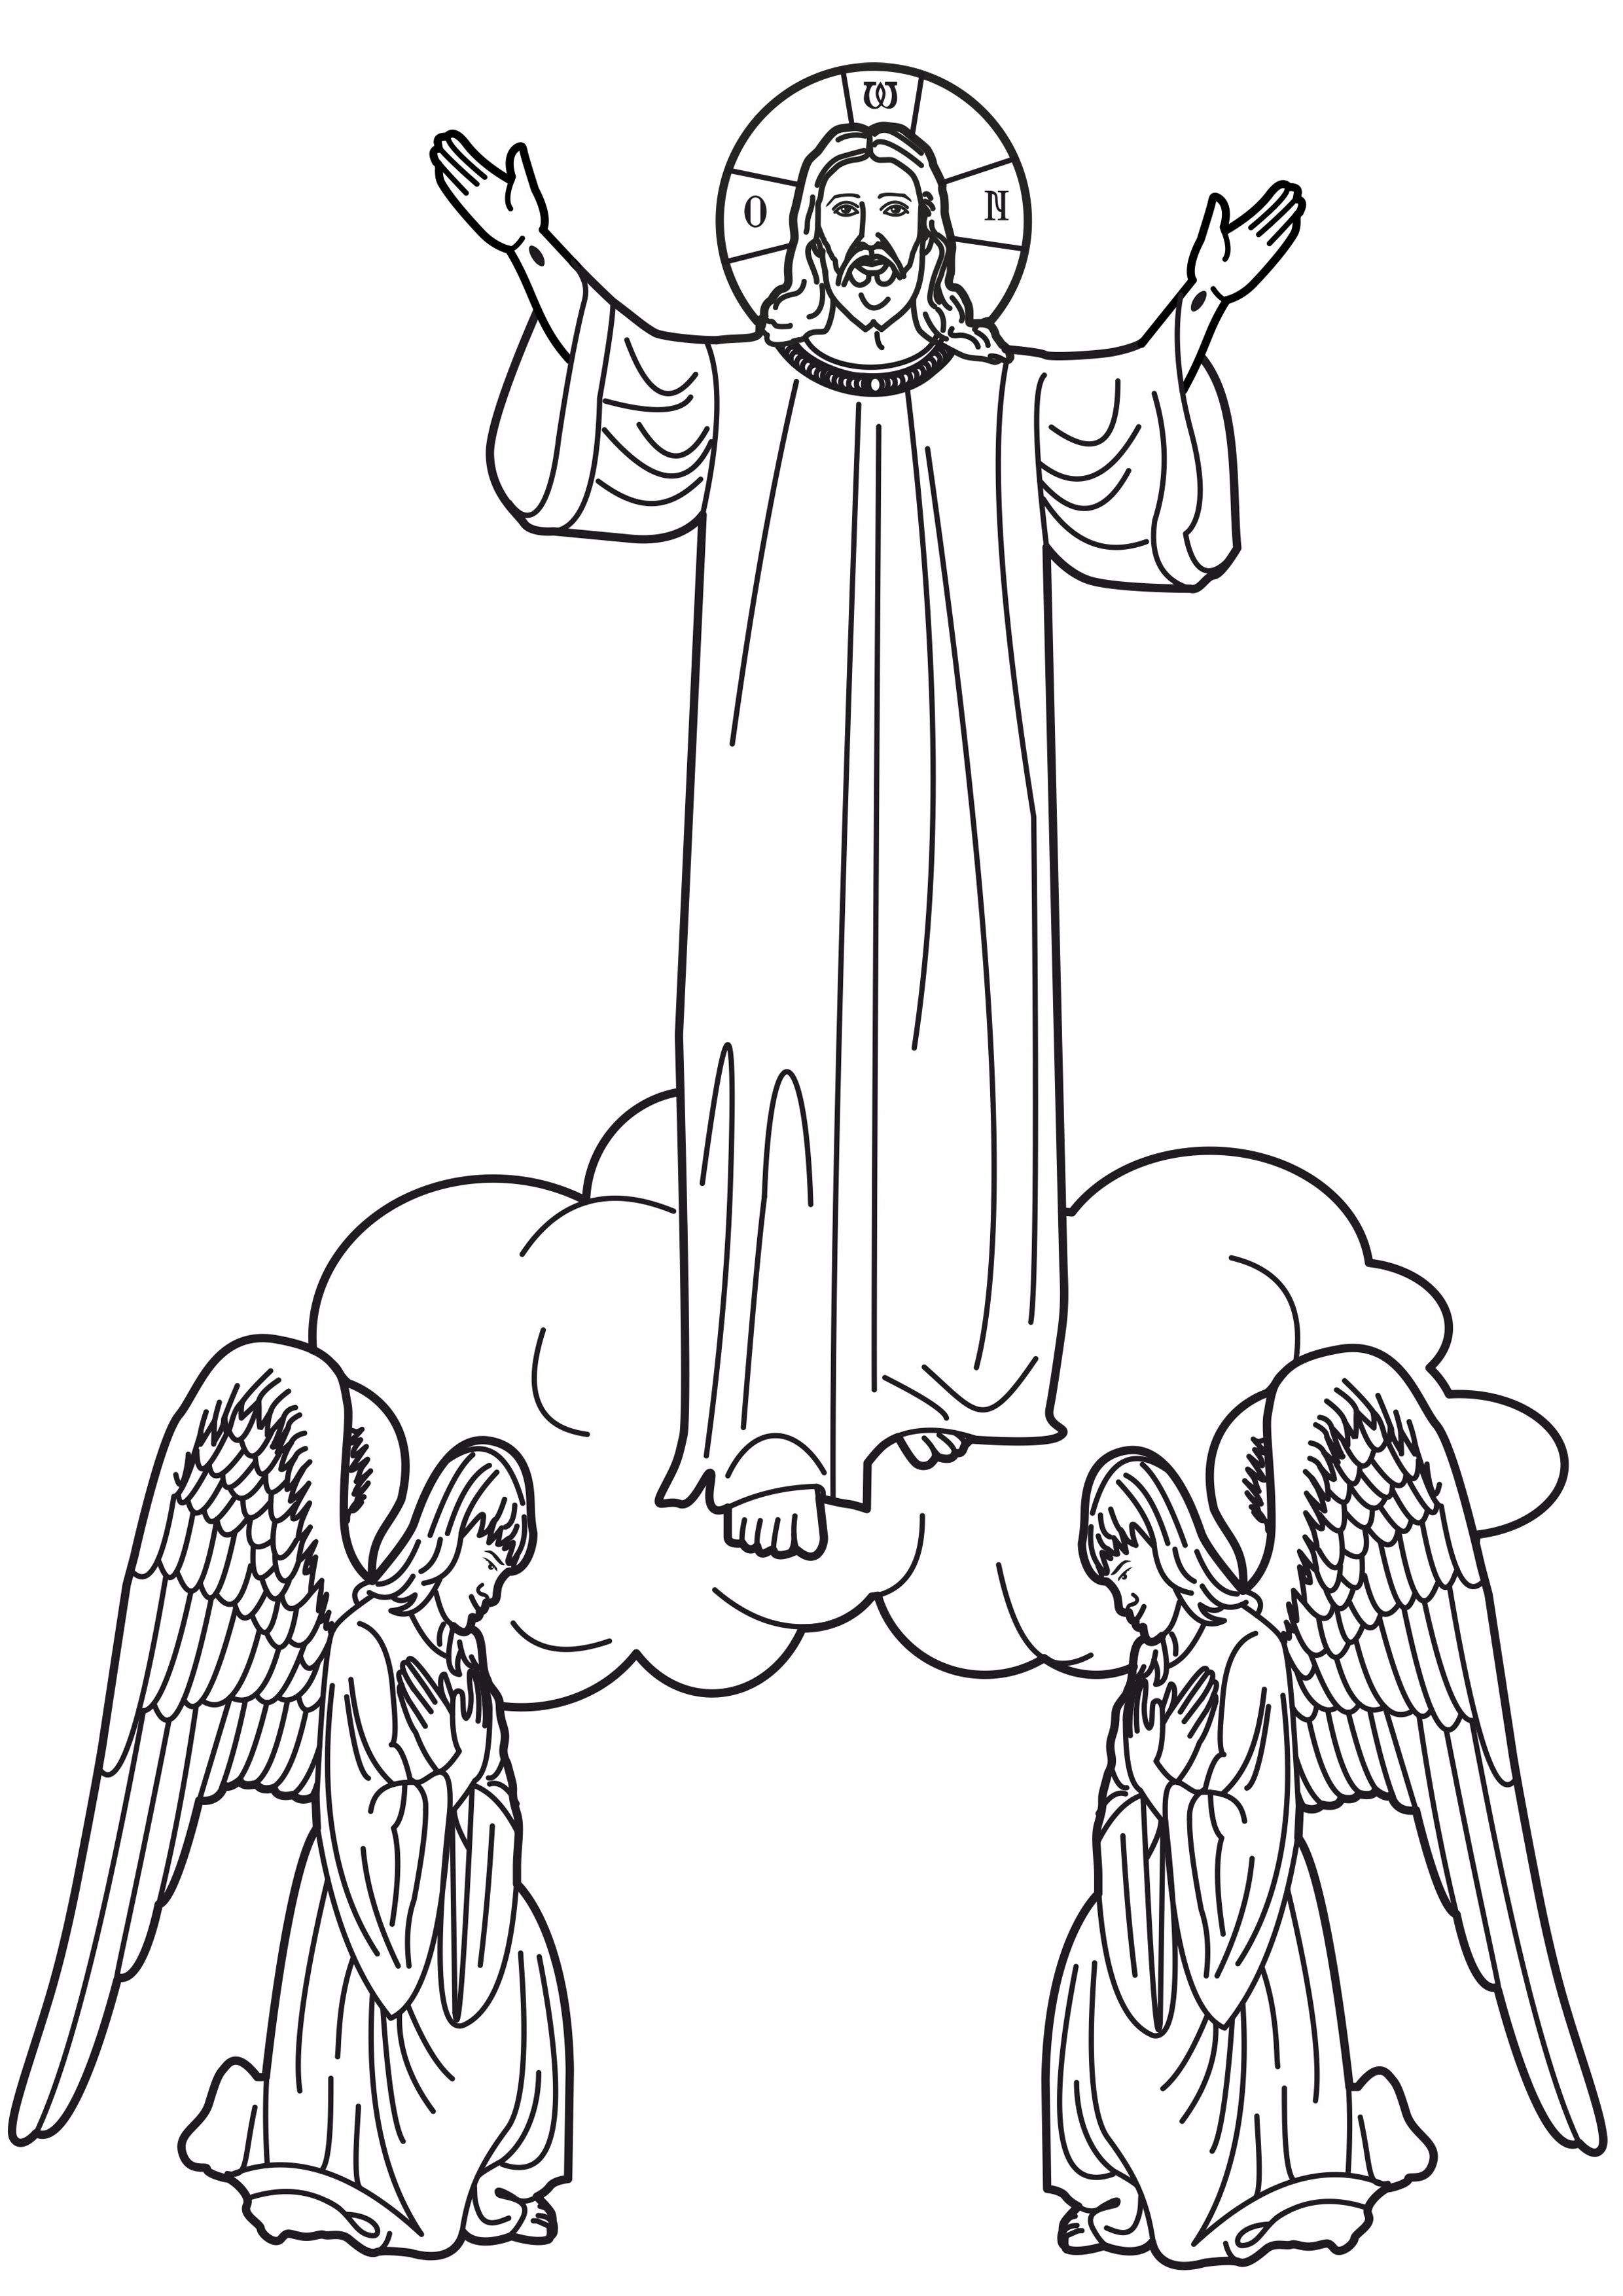 Christ S Ascension Into Heaven Coloring Page Jesus Coloring Pages Easter Coloring Pages Catholic Coloring